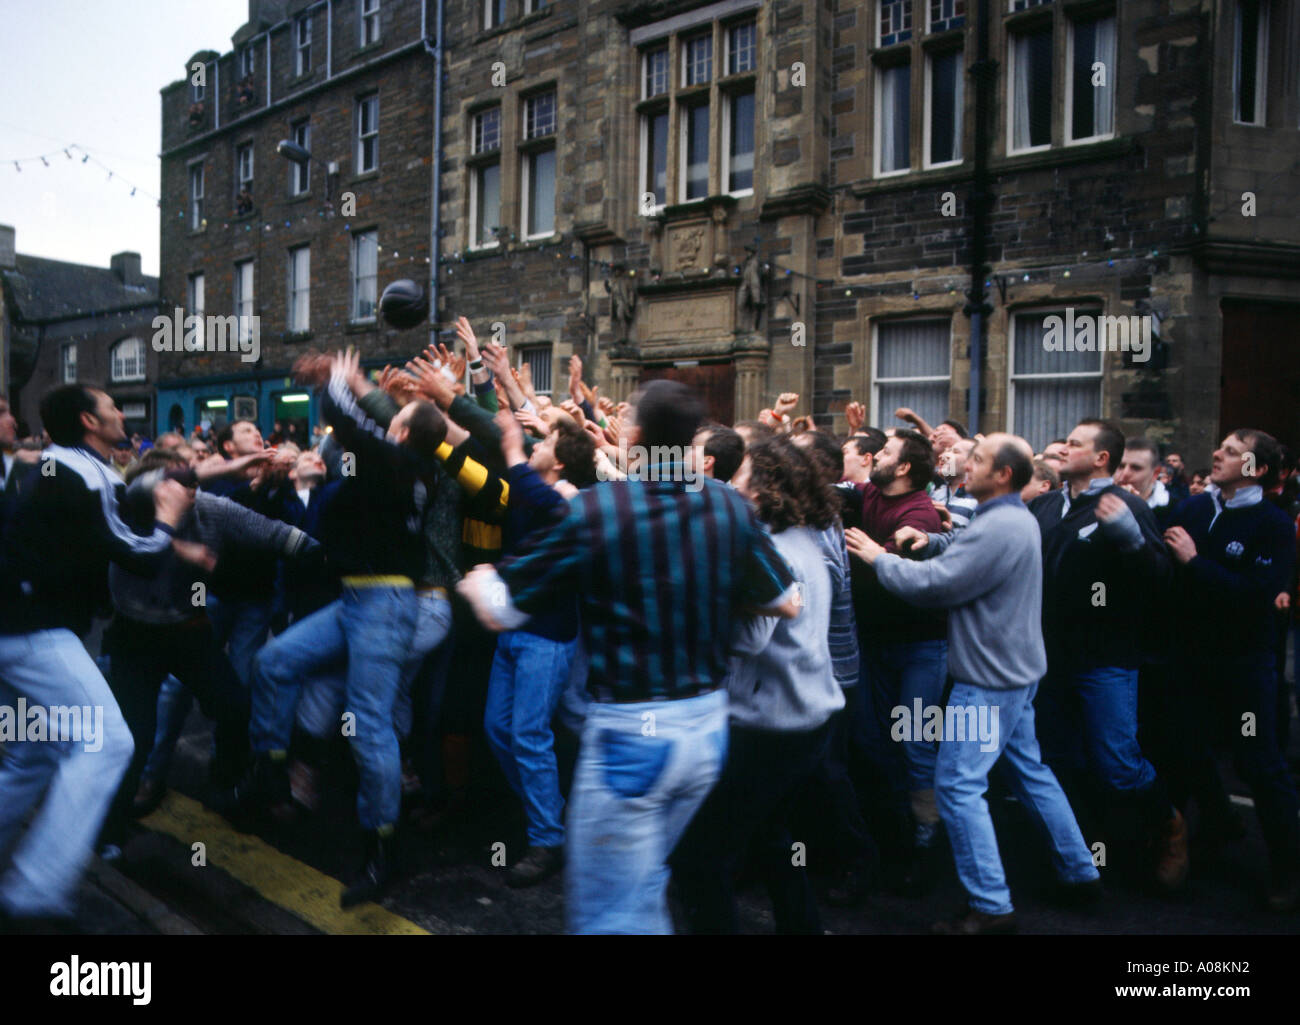 dh The Ba KIRKWALL ORKNEY The start of the 2000 New Years day Ba Stock Photo